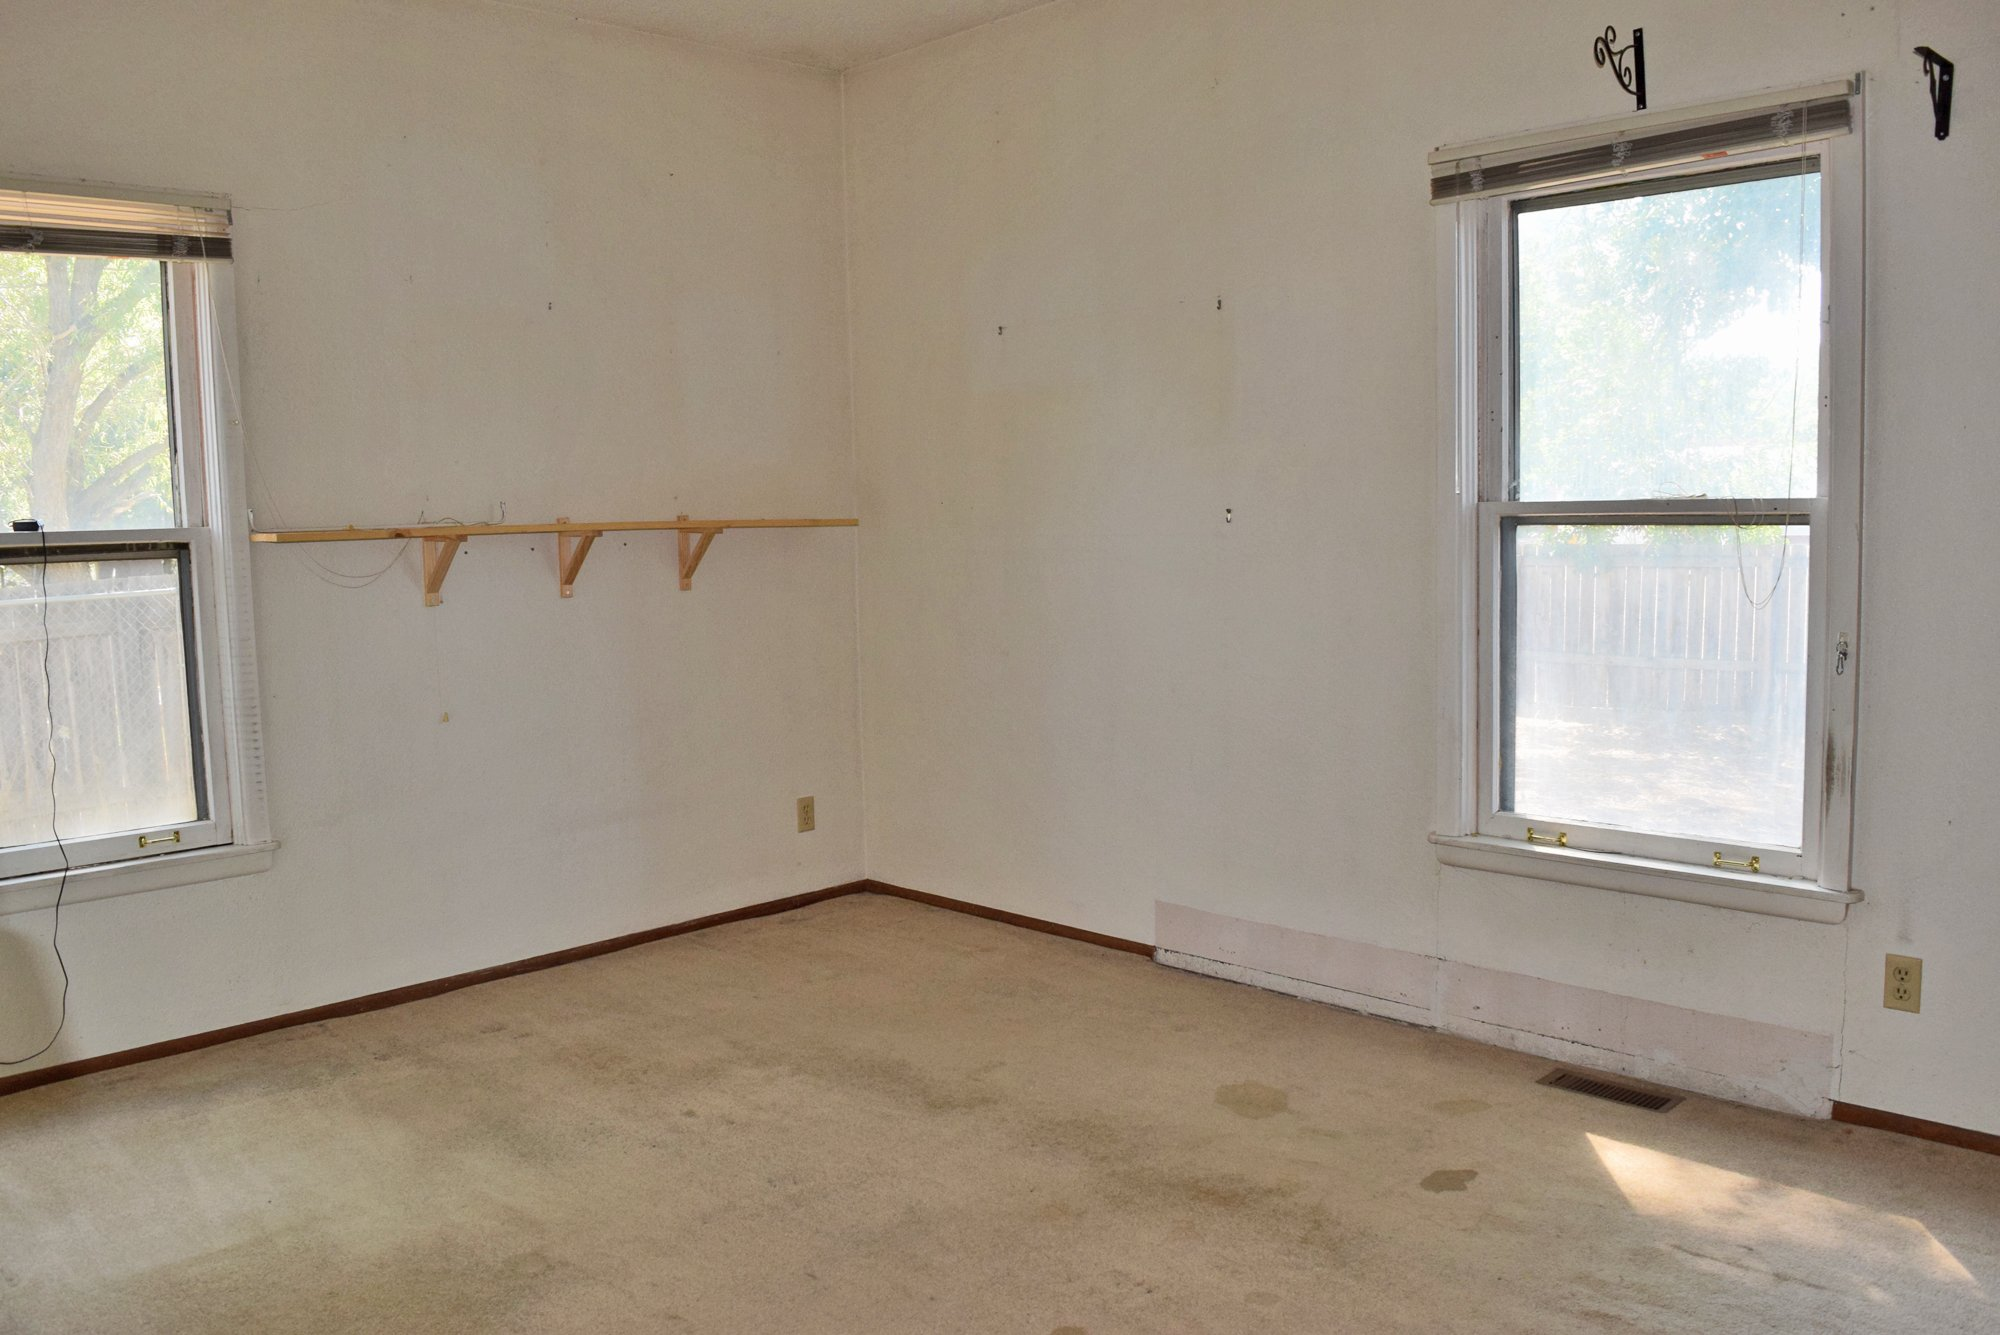 Bedroom with Carpet - 1301 N. 1st St. Montrose, CO 81401 - Atha Team Realty